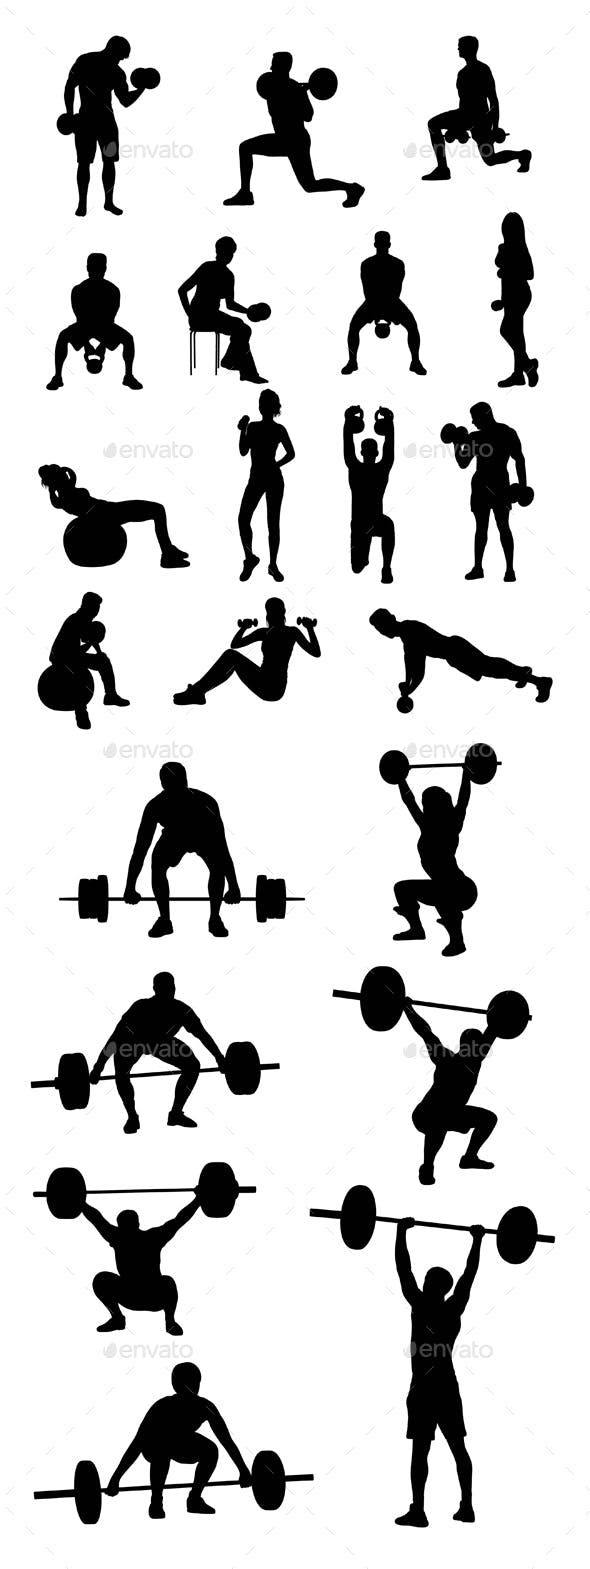 Dumbbell Exercises and Weightlifter Silhouettes - Sports/Activity Conceptual #dumbbellexercises